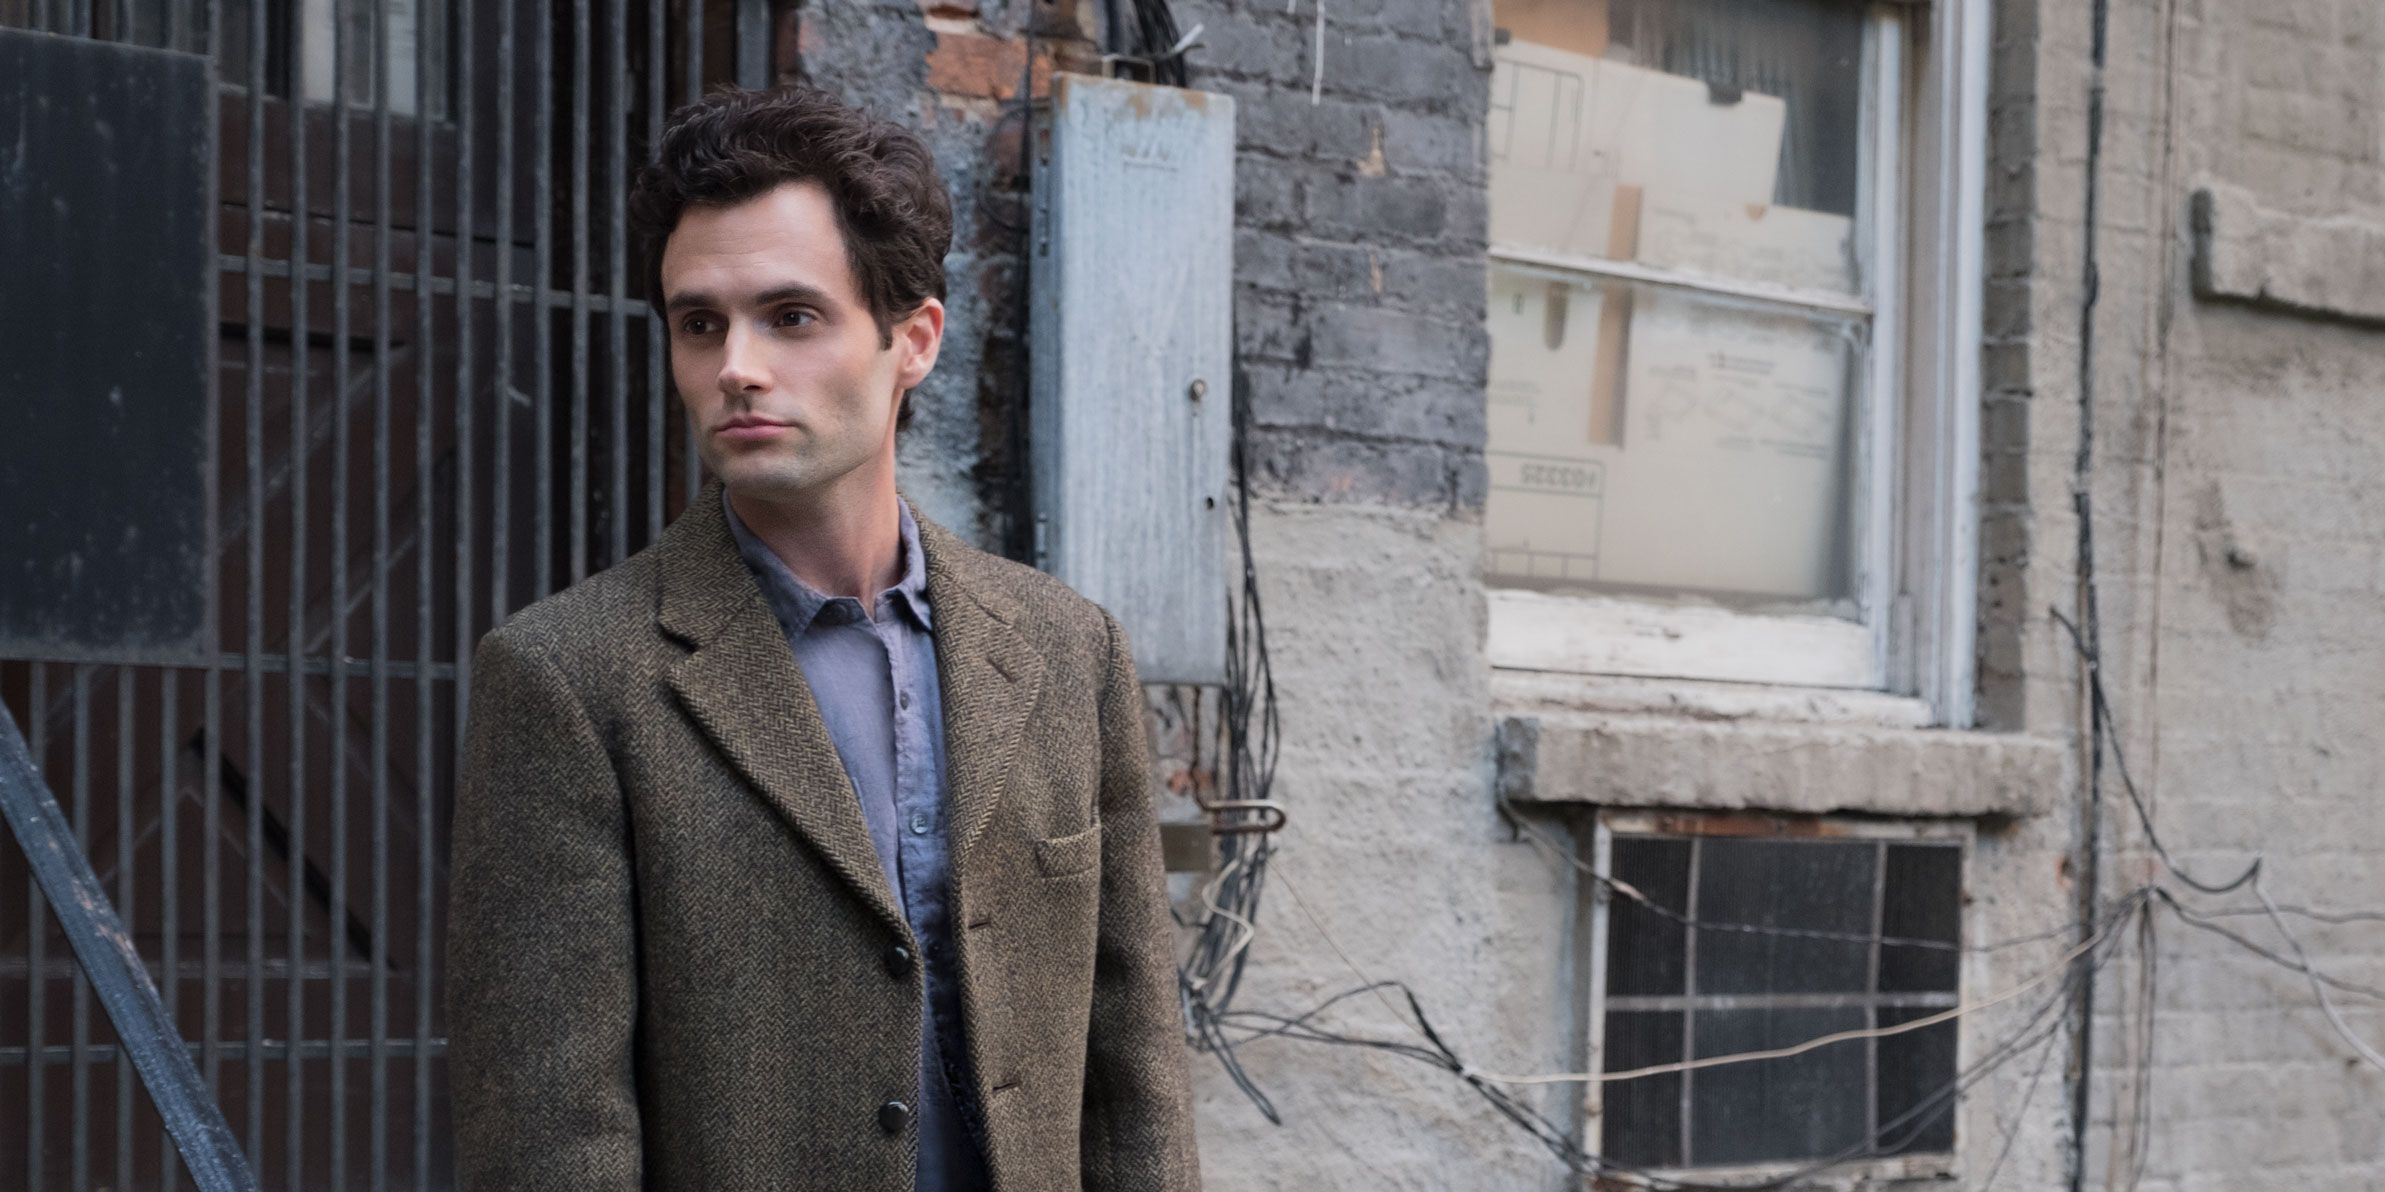 Penn Badgley as Joe Goldberg in YOU